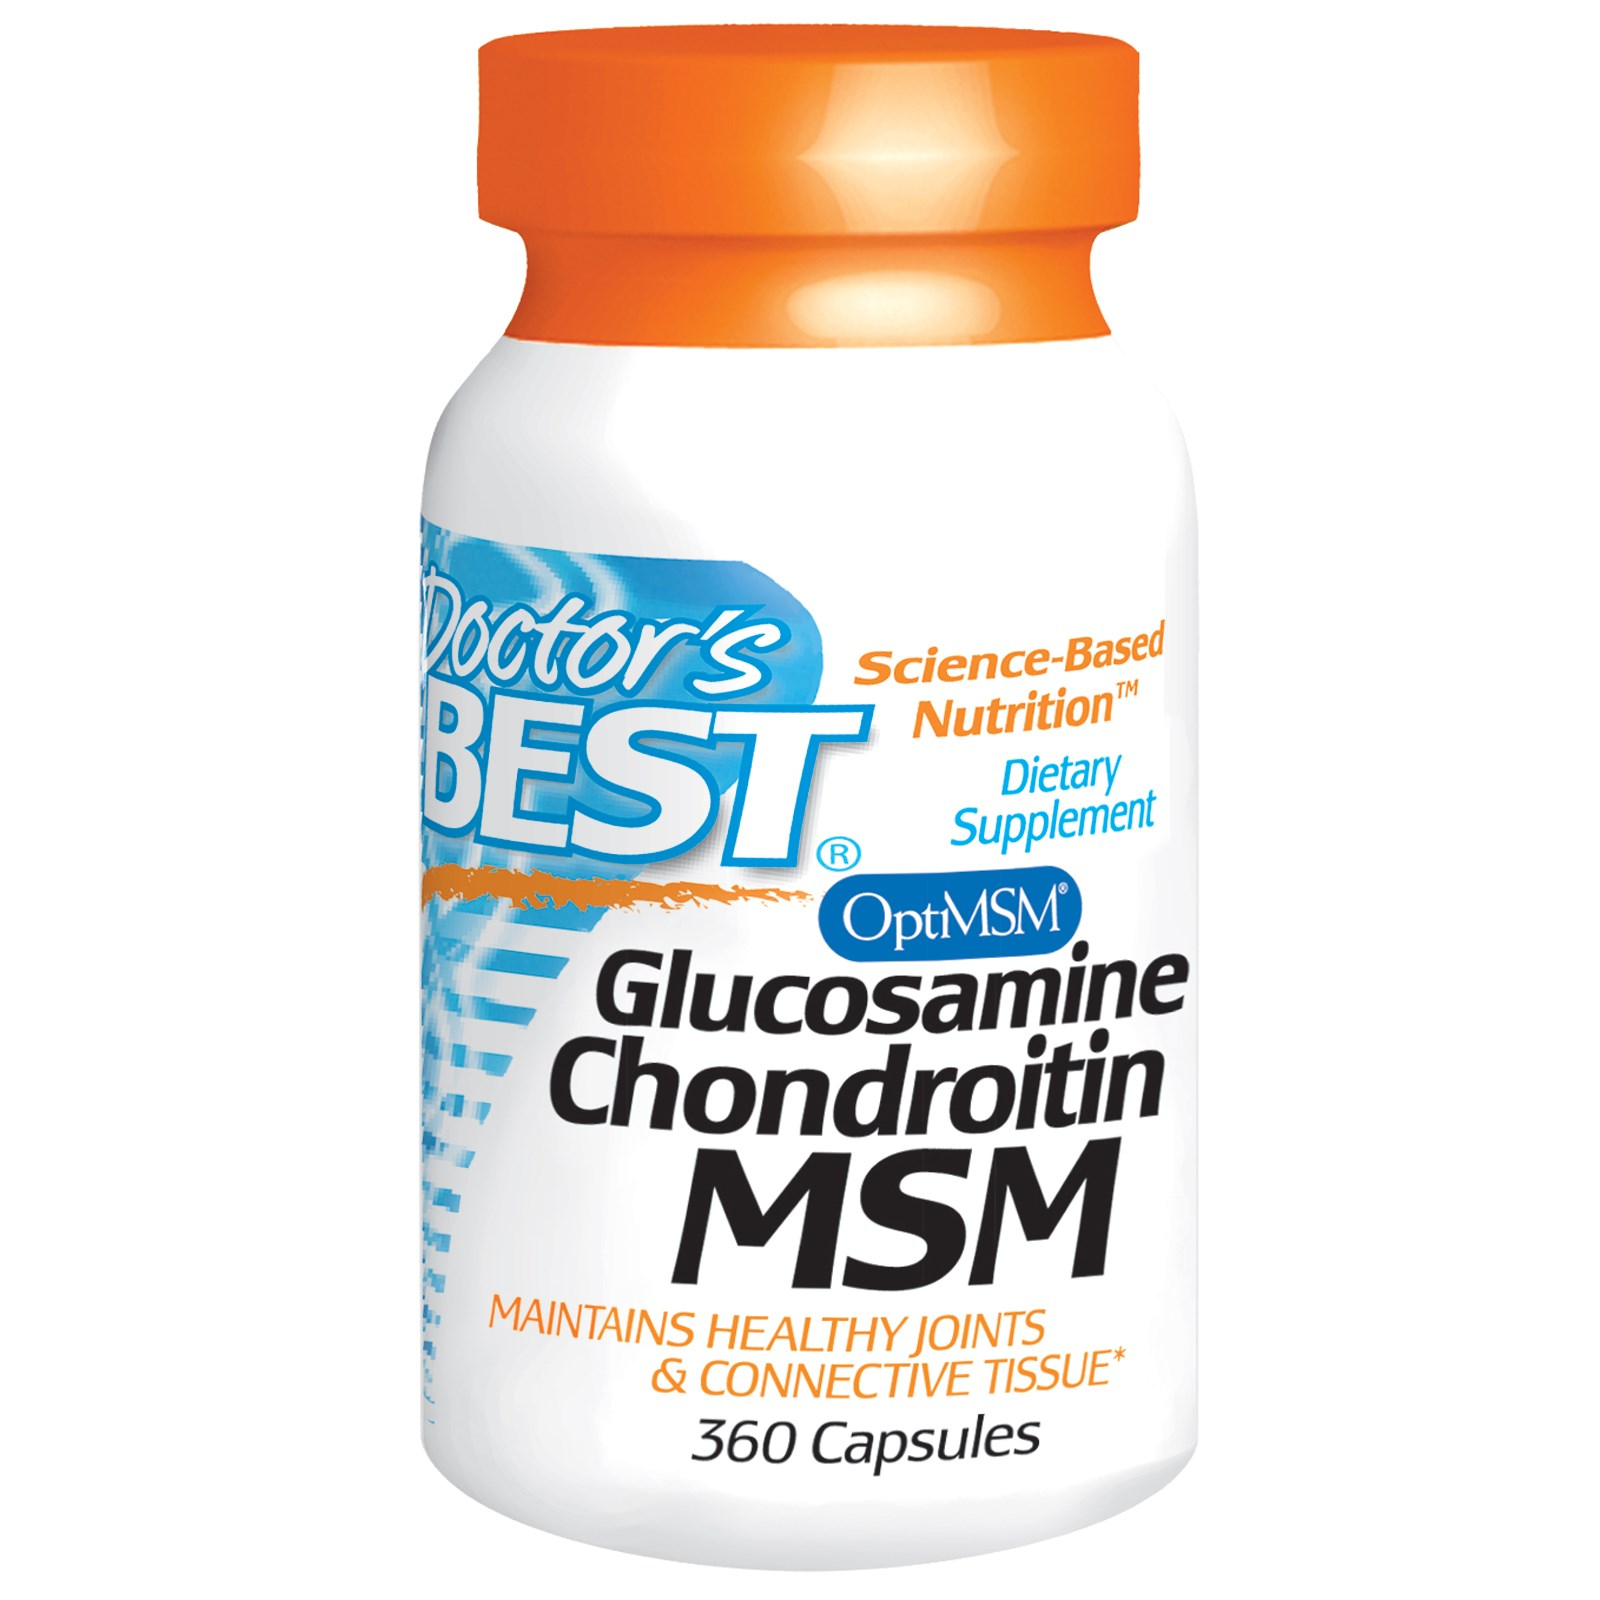 Image of Doctor's Best, Glucosamine Chondroitin MSM, 360 Capsules 0753950003644